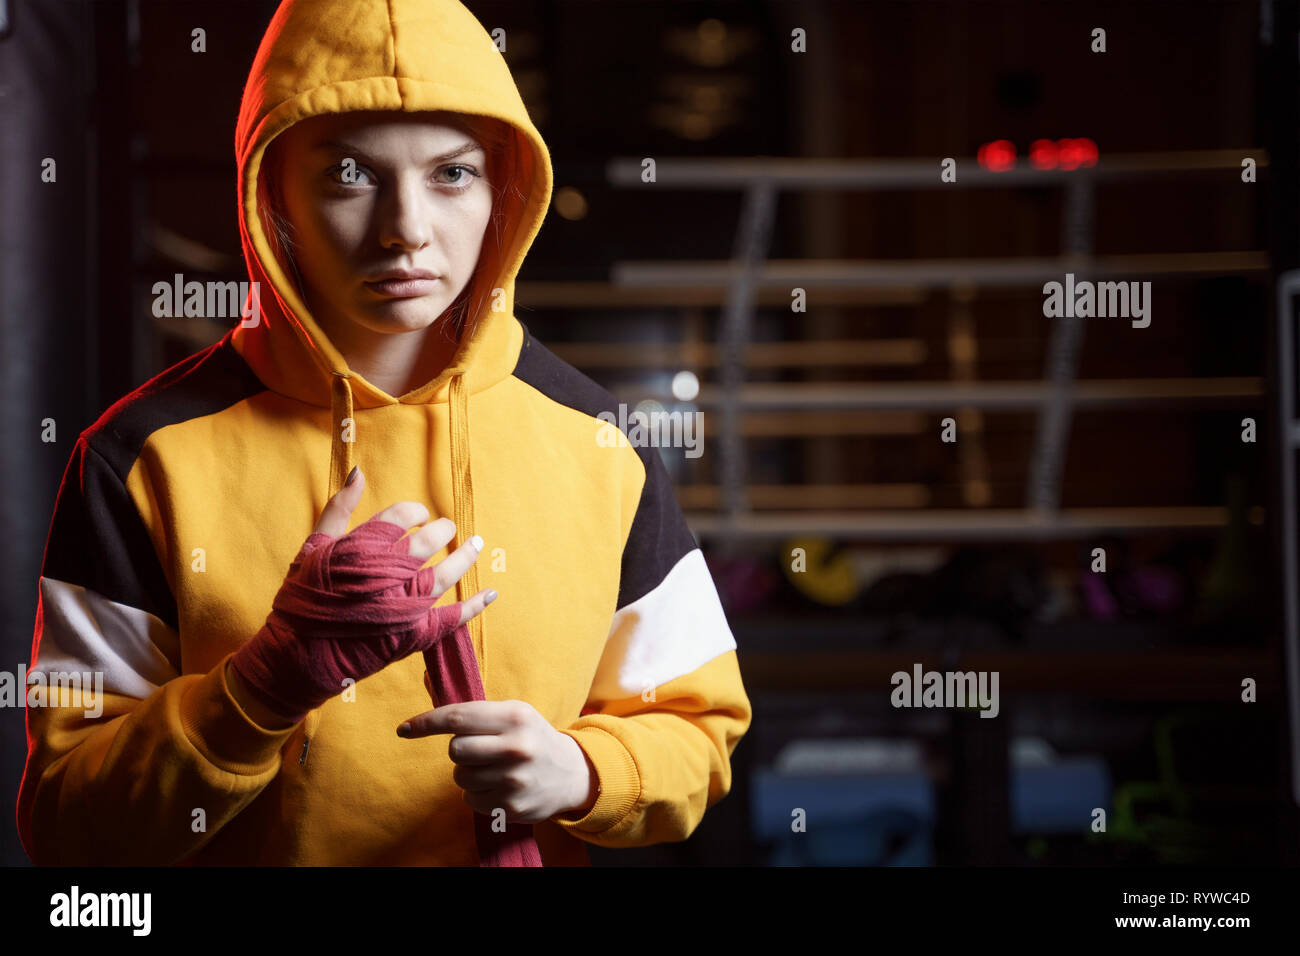 Woman boxer pulls red bandages around her hands on ring . - Stock Image